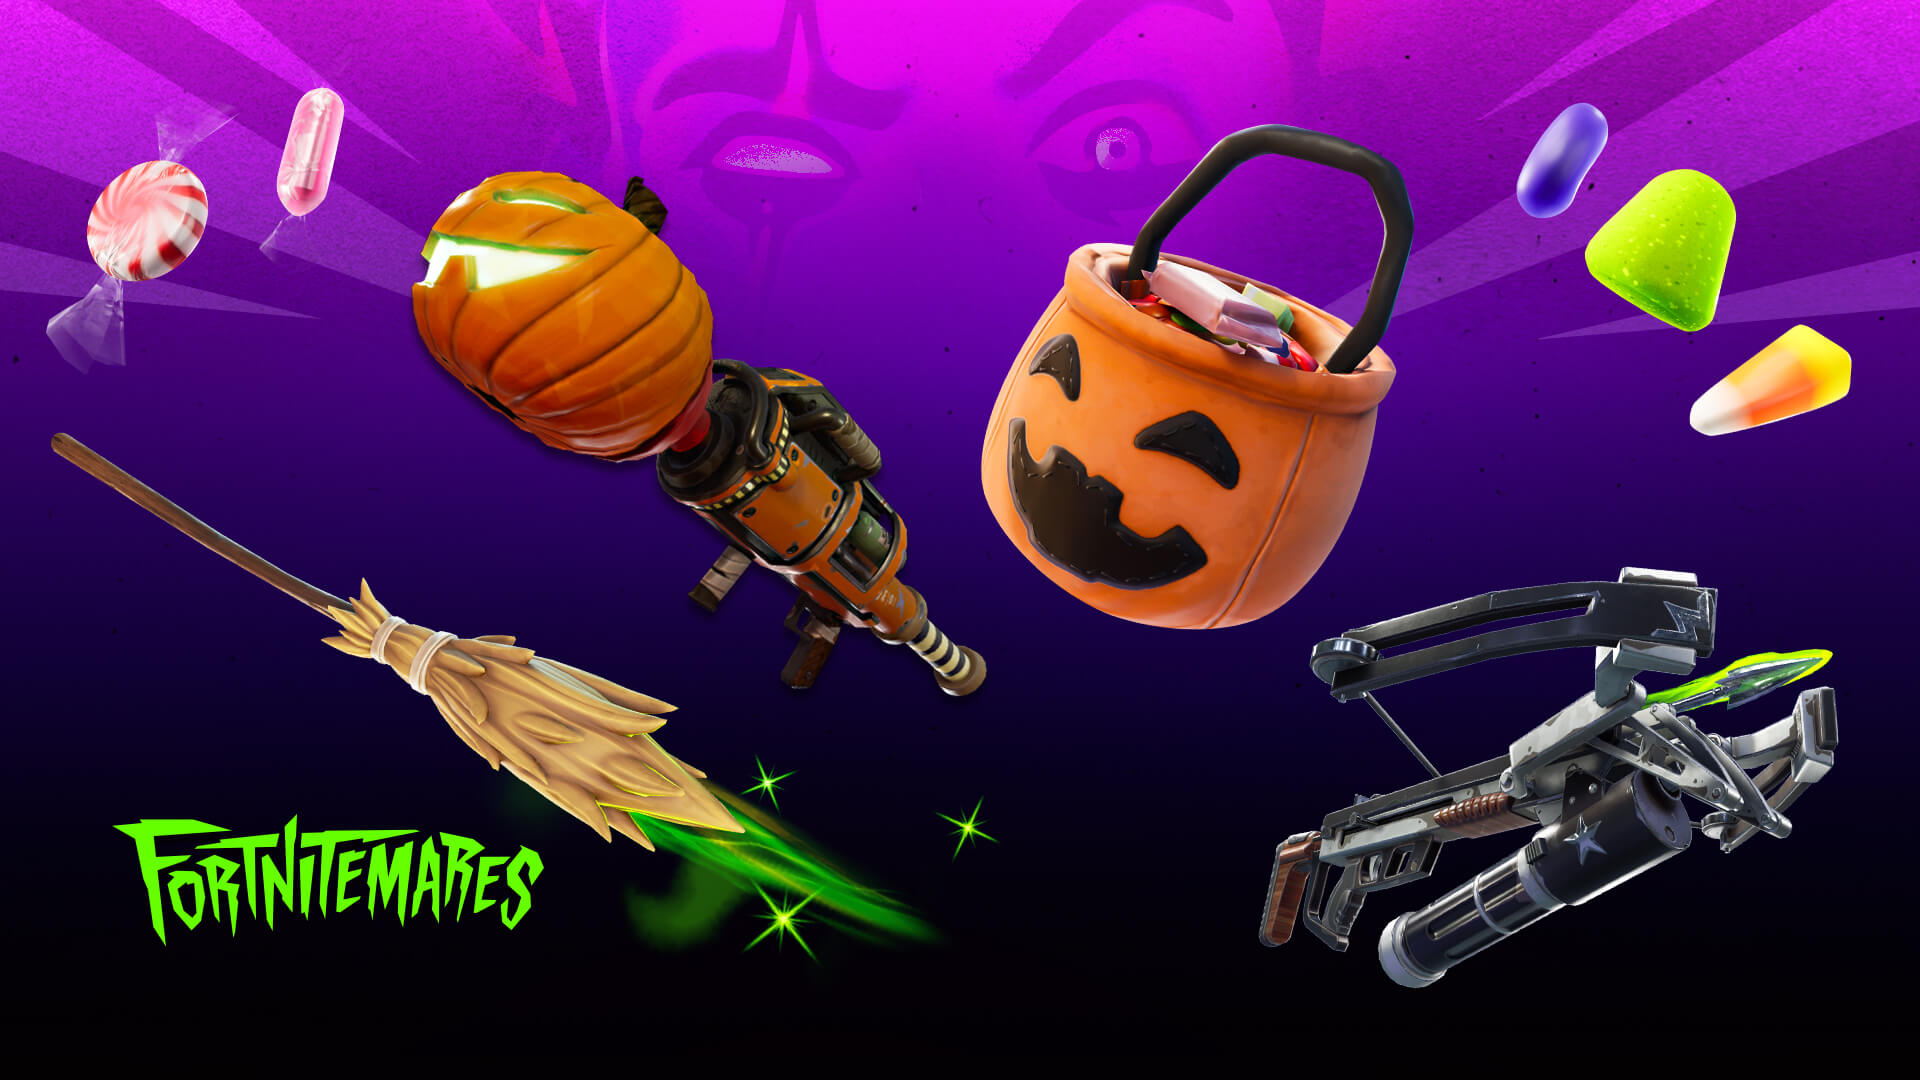 Fortnitemares Pumpkin Rocket Launcher, Fiend Hunter Crossbow, and Witch Broom